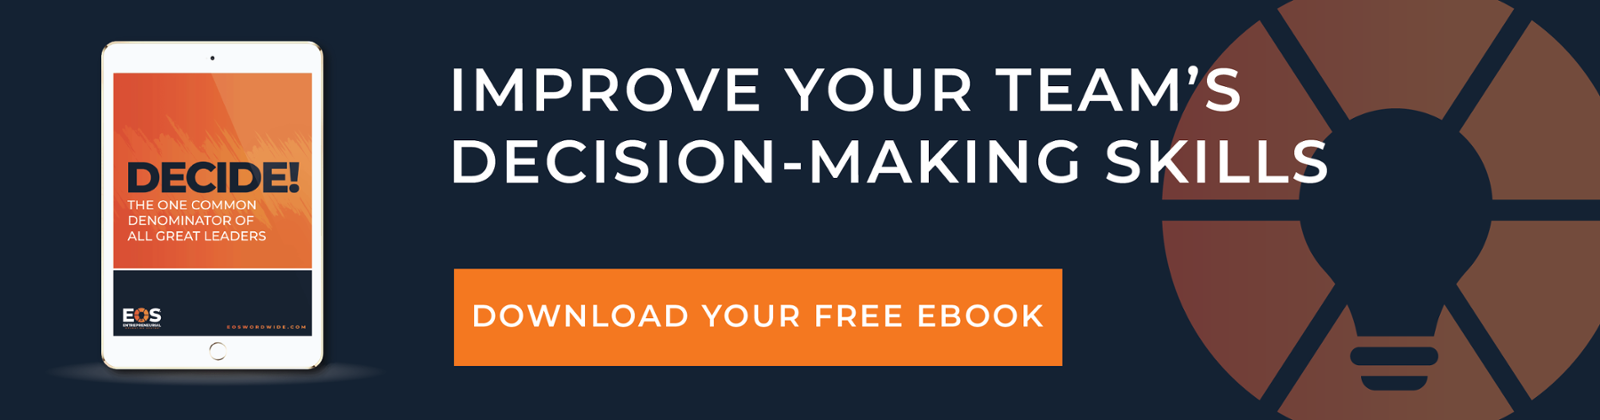 Improve your team's decision-making skills. Click here to download our free ebook: Decide.